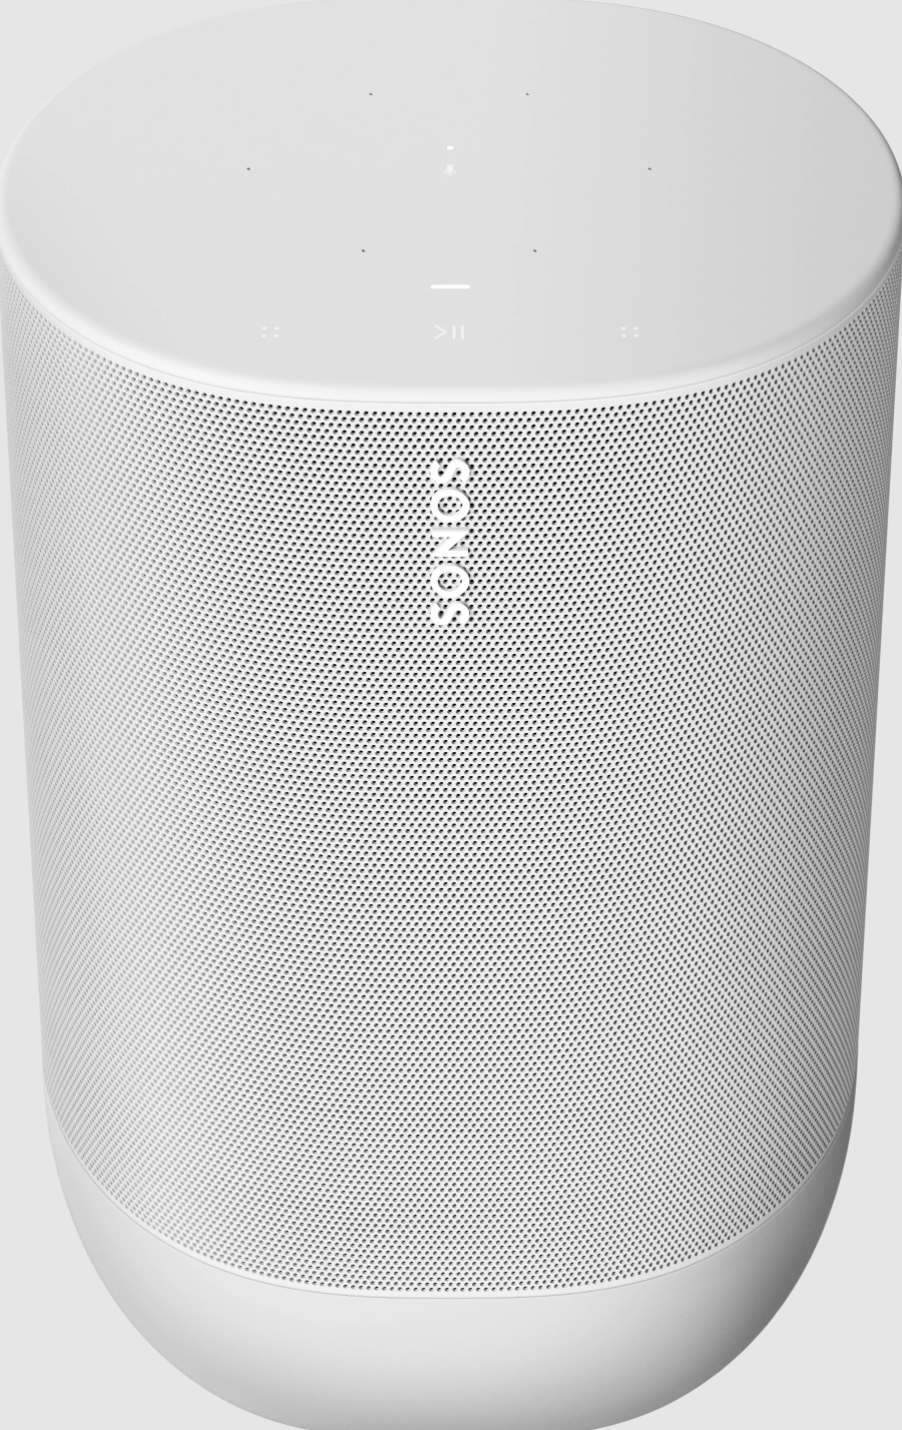 Move from Sonos